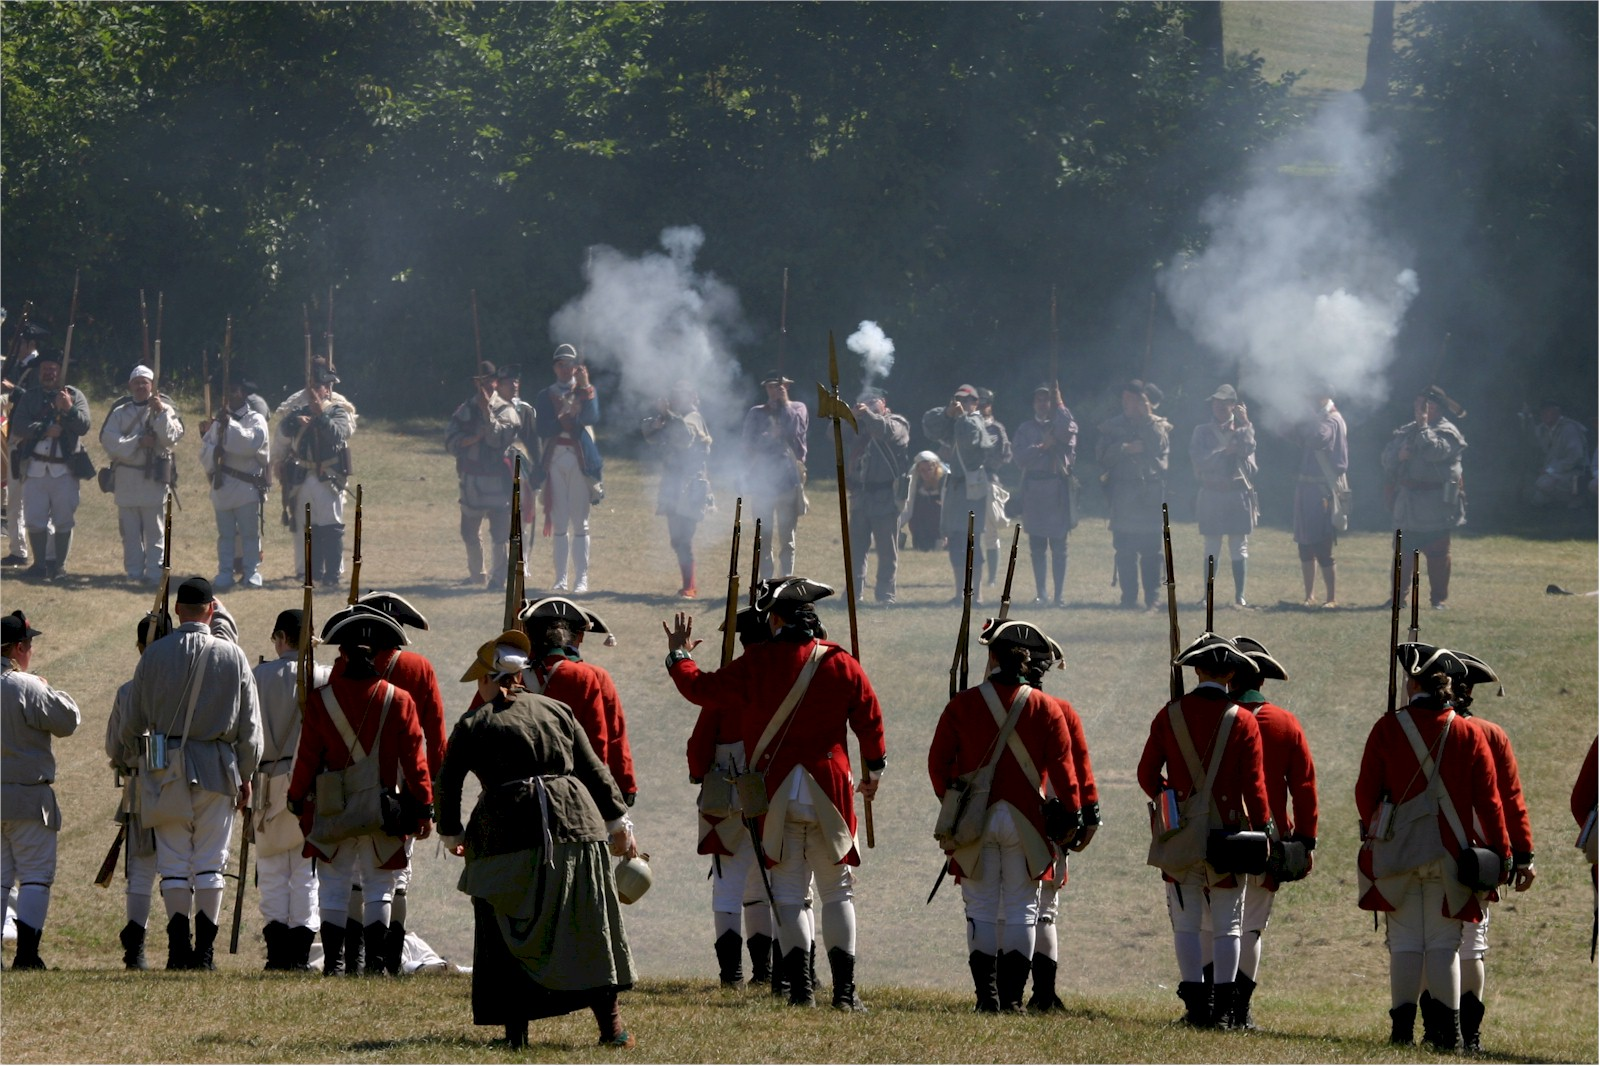 Reenactment Battle in Clearing